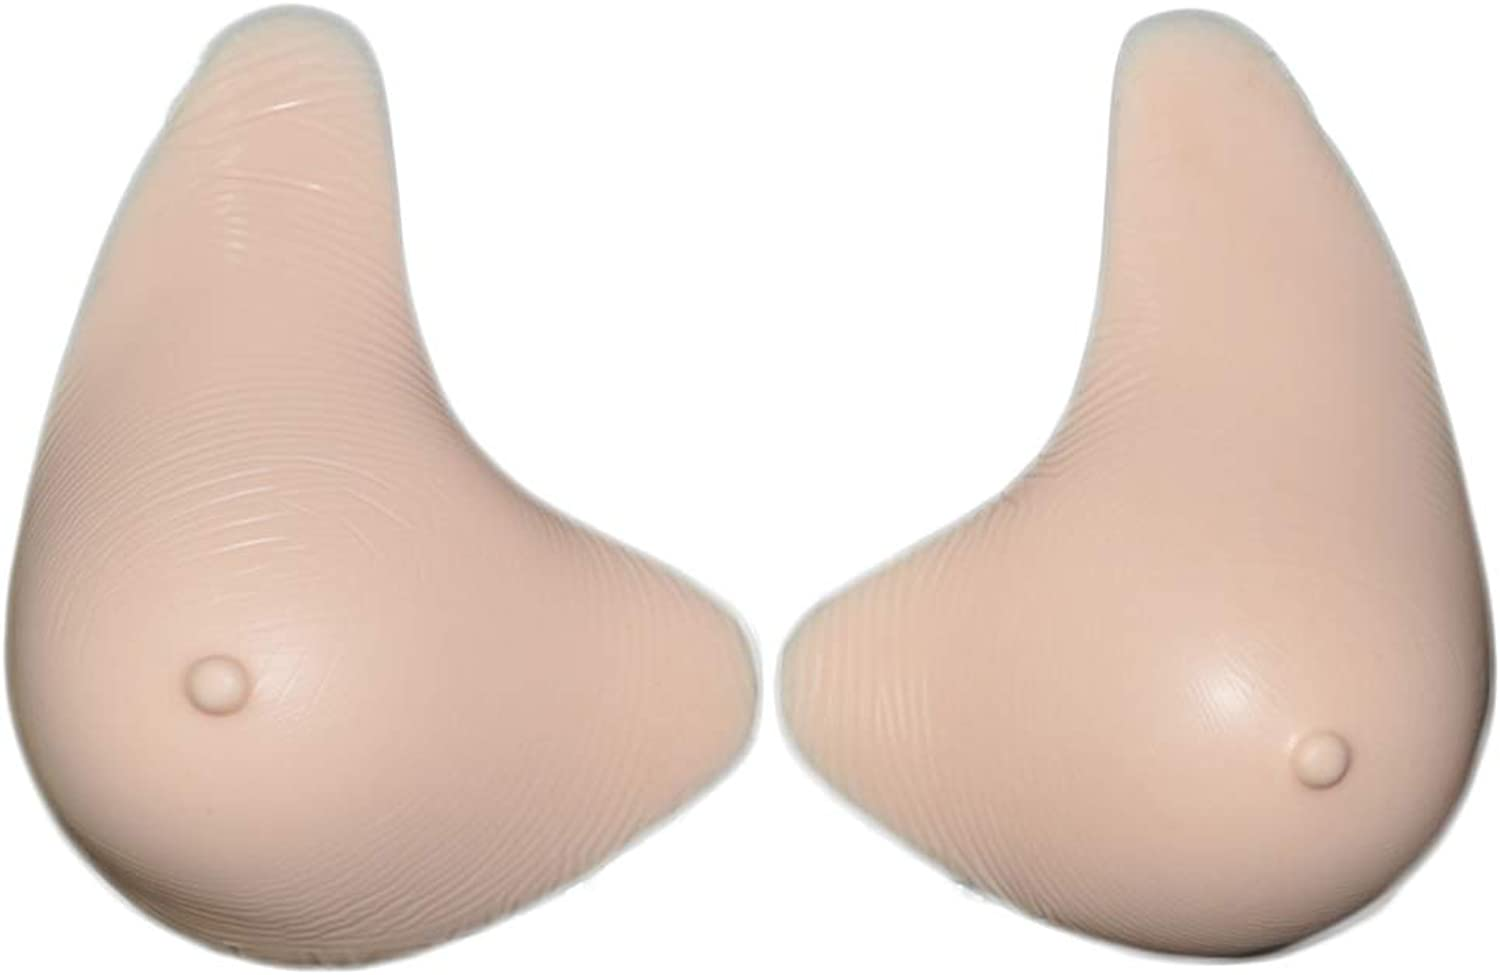 Prosthesis Silicone Breast Forms Soft Realistic Longer Tail Shaping Enhancer False Nipple,S